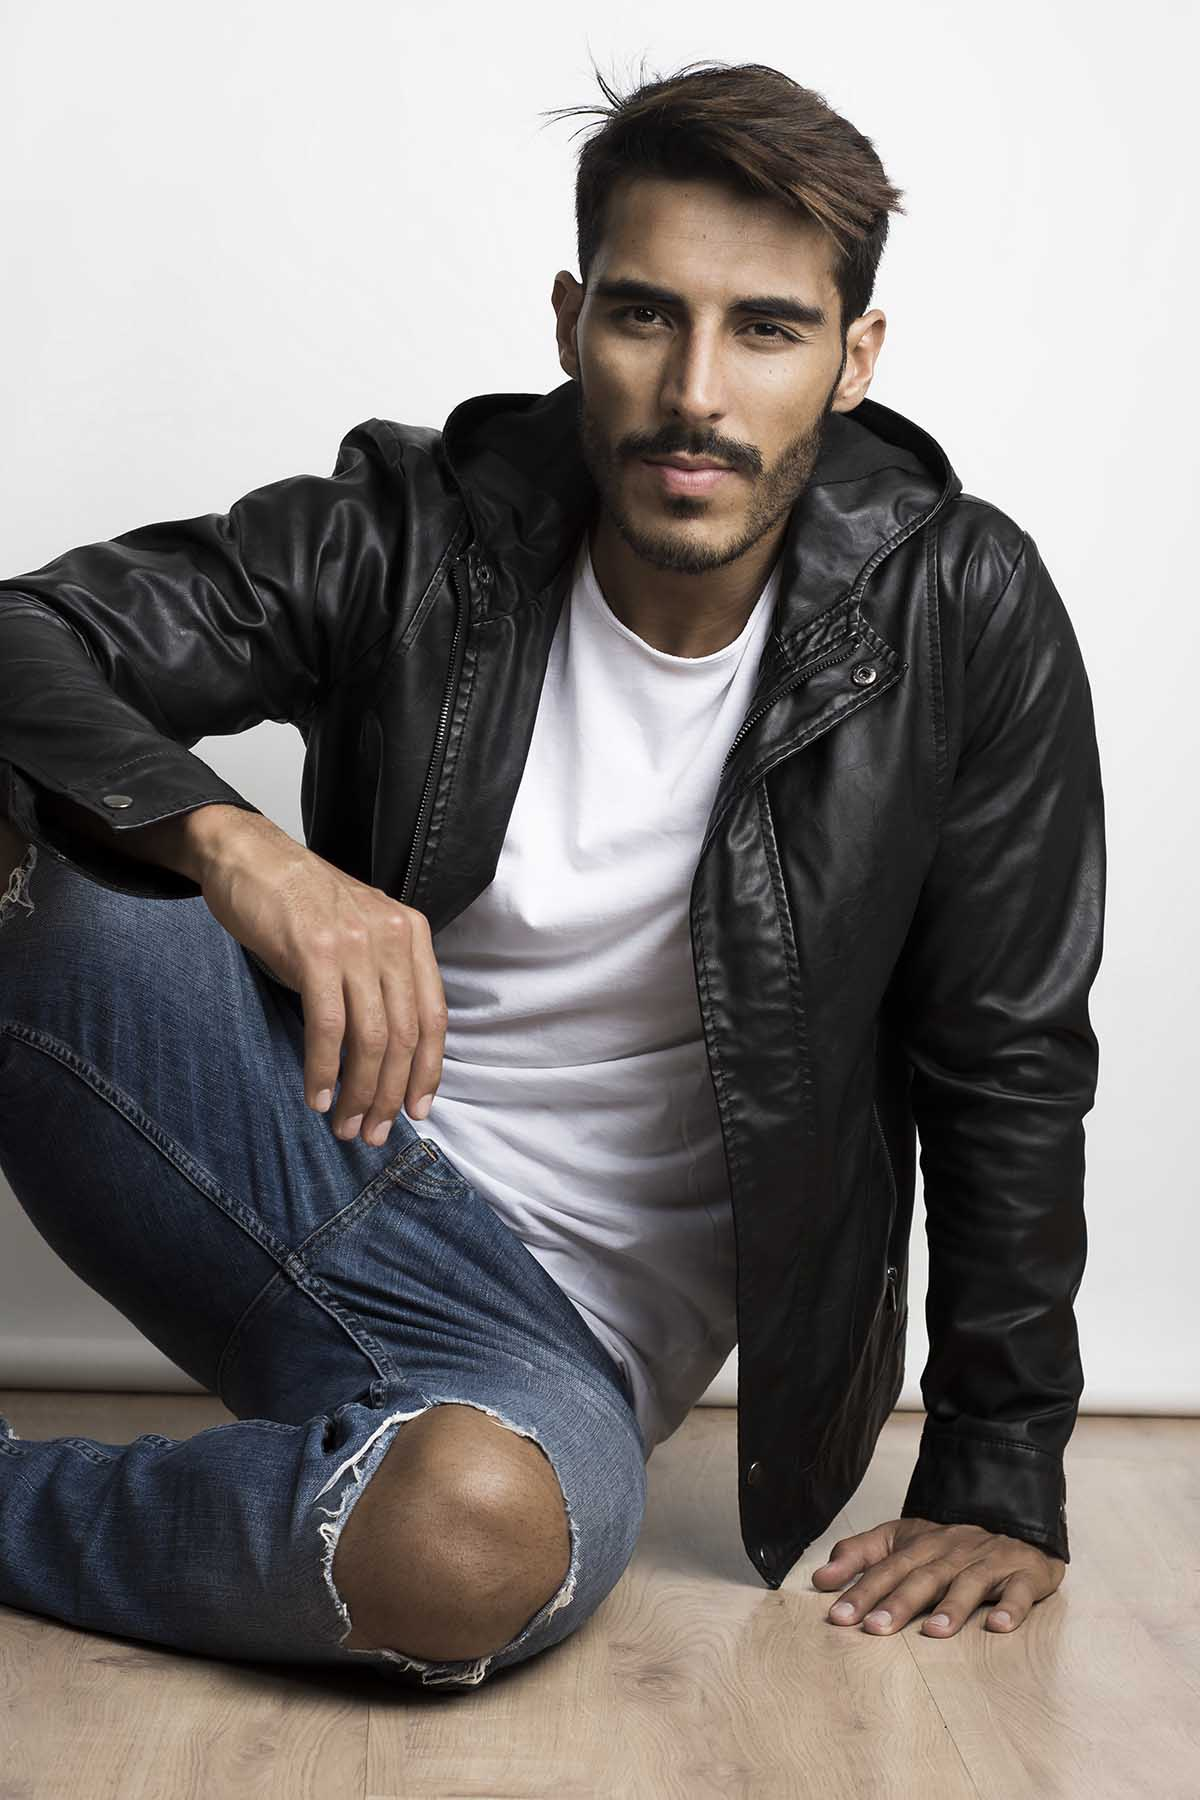 Paulo Philippe by Olavo Martins for Brazilian Male Model